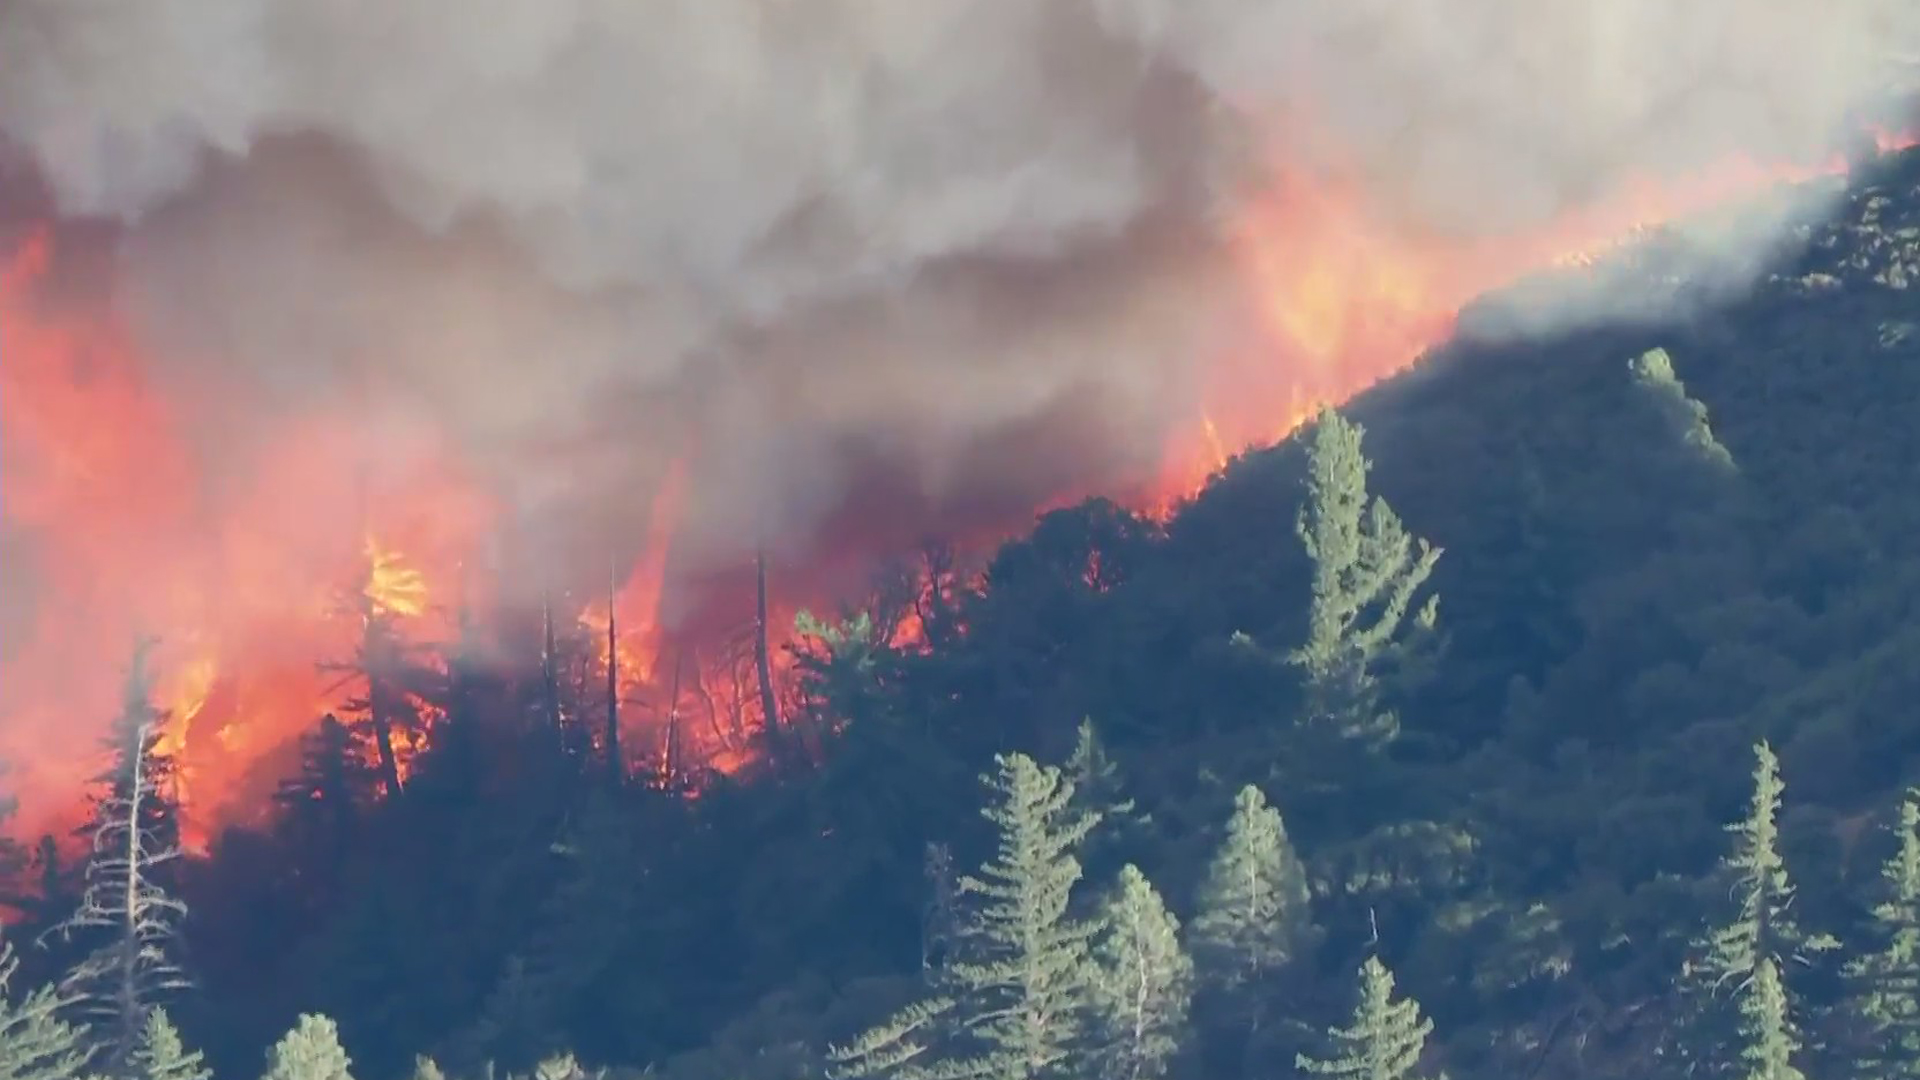 Trees burns during the Lake Fire in the Lake Hughes area of the Angeles National Forest on Aug. 12, 2020. (KTLA)